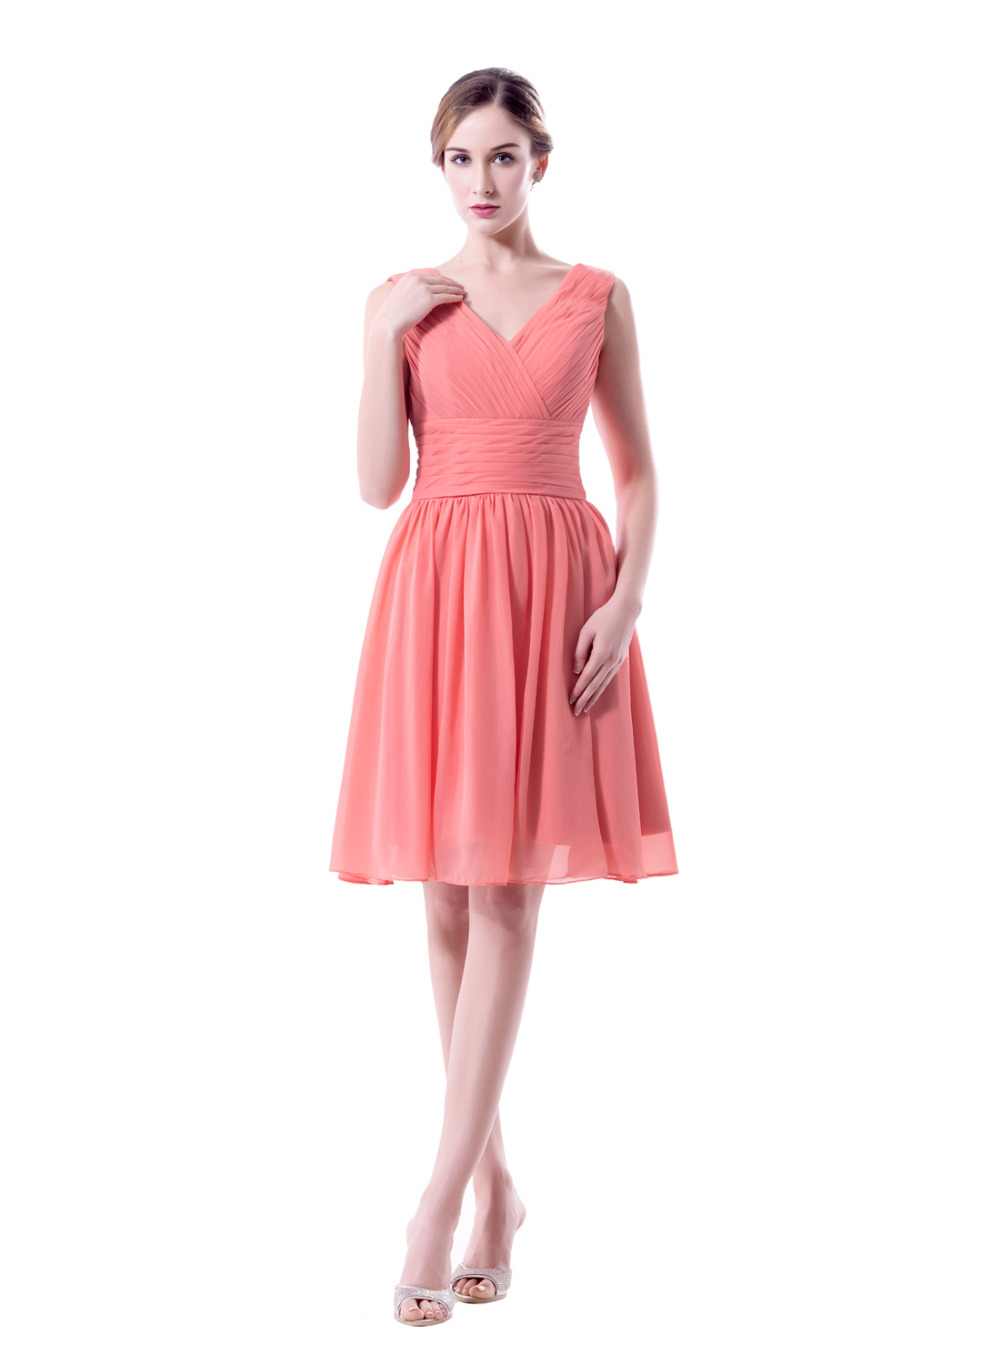 2017 New Hot Selling Hot Pink Short Bridesmaid Dresses Cheap Simple ...